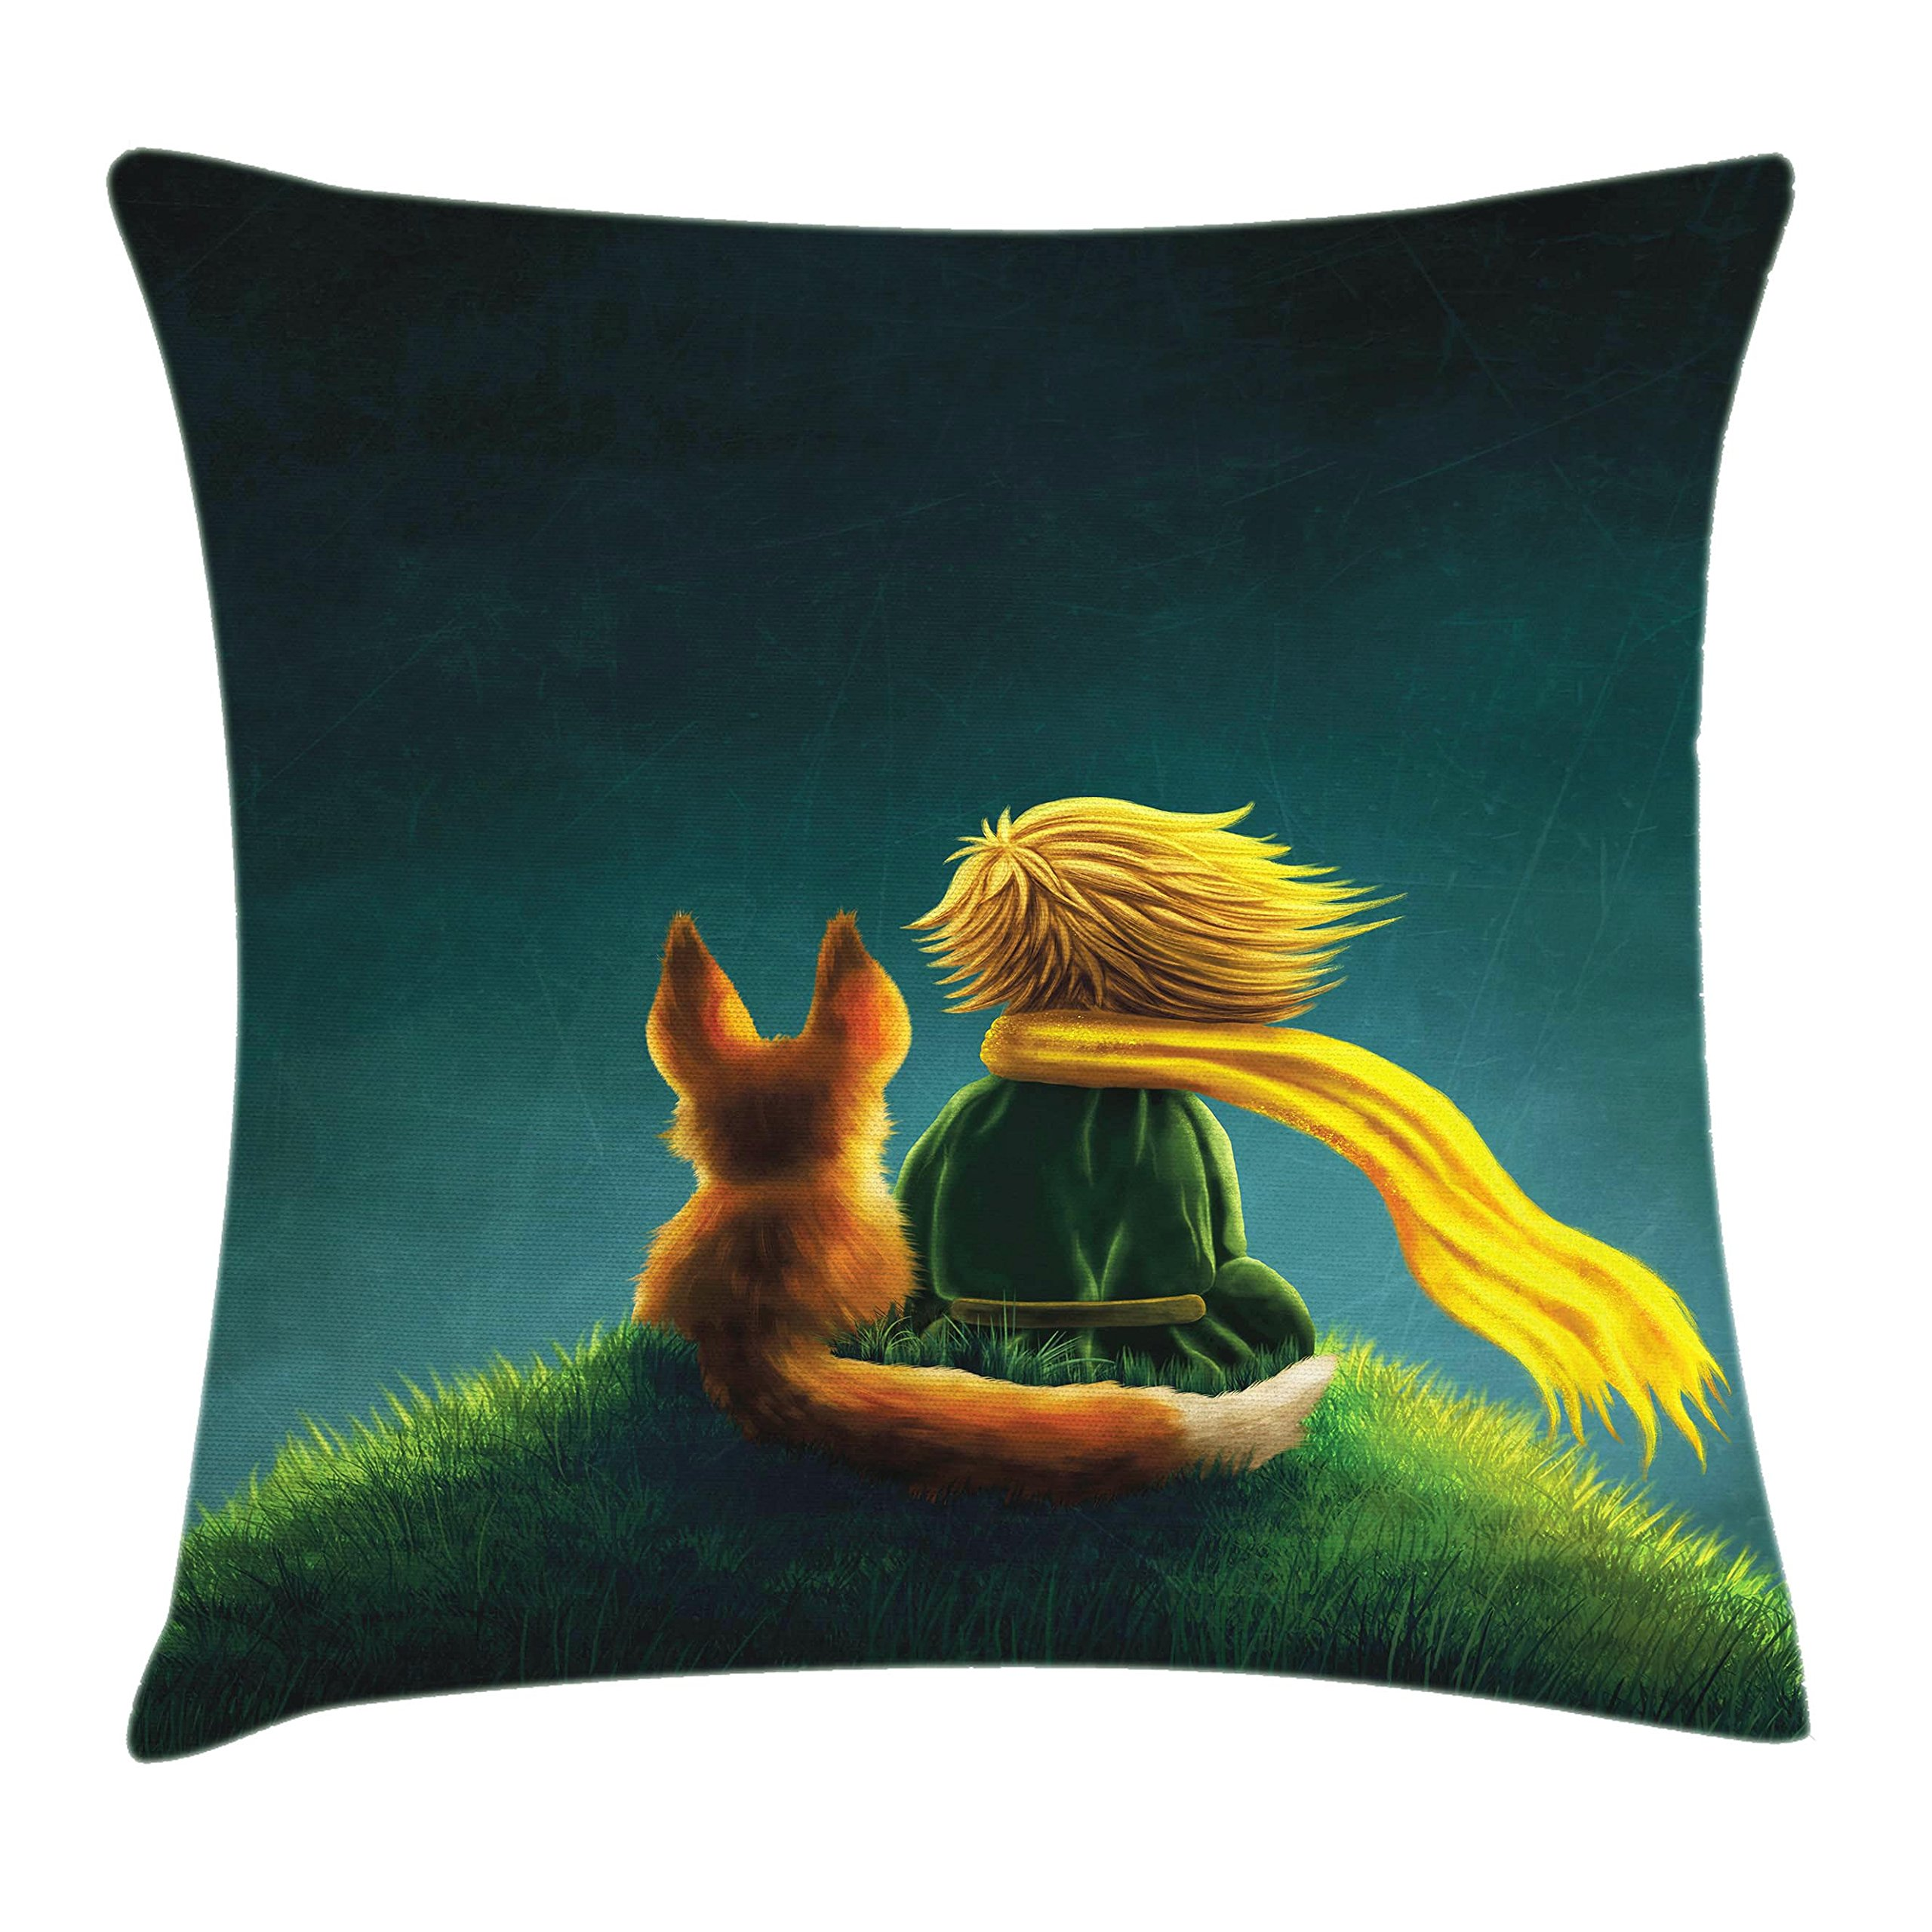 Ambesonne Kids Decor Throw Pillow Cushion Cover by, Childrens Decor Little Prince and the Fox Looking at the Sky Pattern, Decorative Square Accent Pillow Case, 16 X 16 Inches, Dark Blue Fern Green